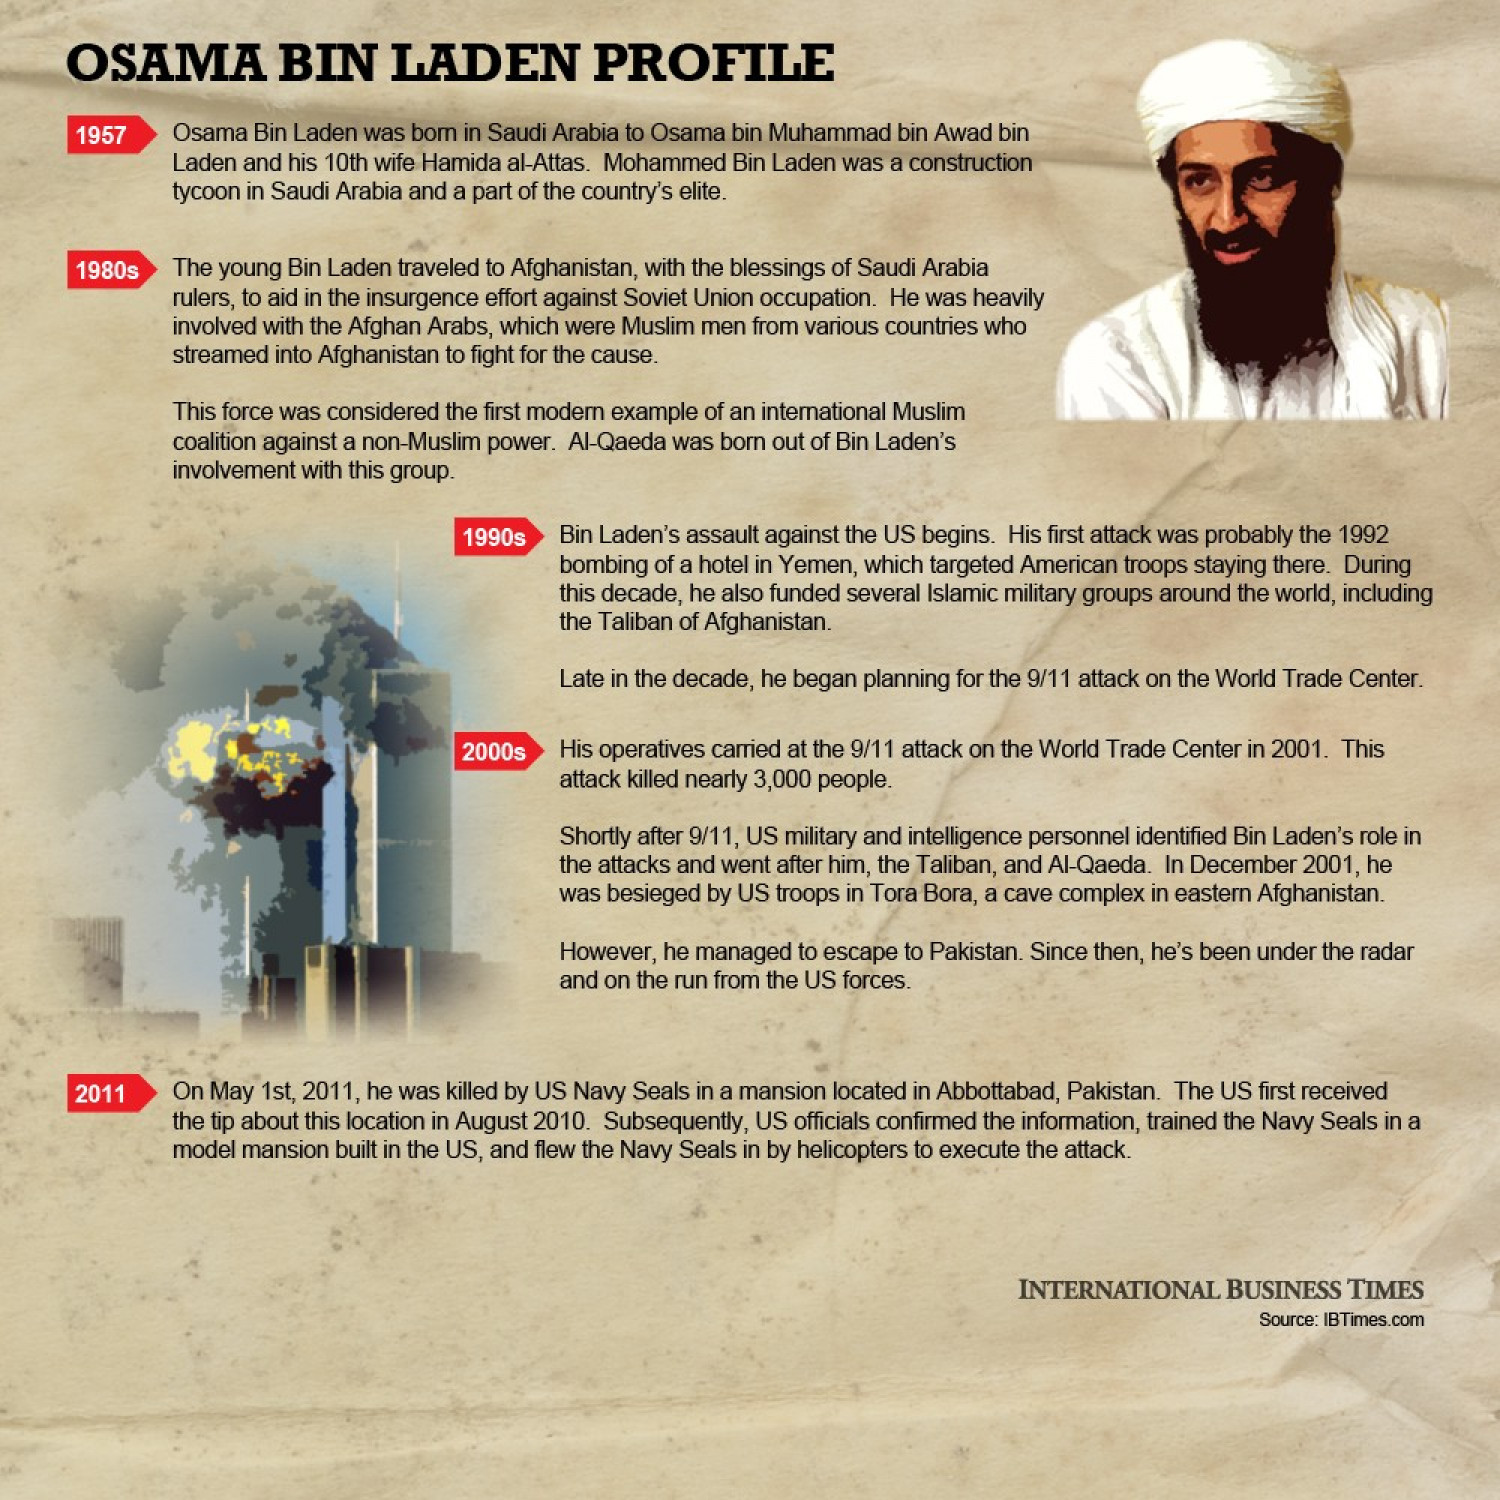 Simple Essays For High School Students Free Osama Bin Laden Essays And Papers Helpmecom The Importance Of English Essay also Essays On Health Care Reform All About Free Osama Bin Laden Essays And Papers Helpmecom  How To Write A Thesis For A Narrative Essay